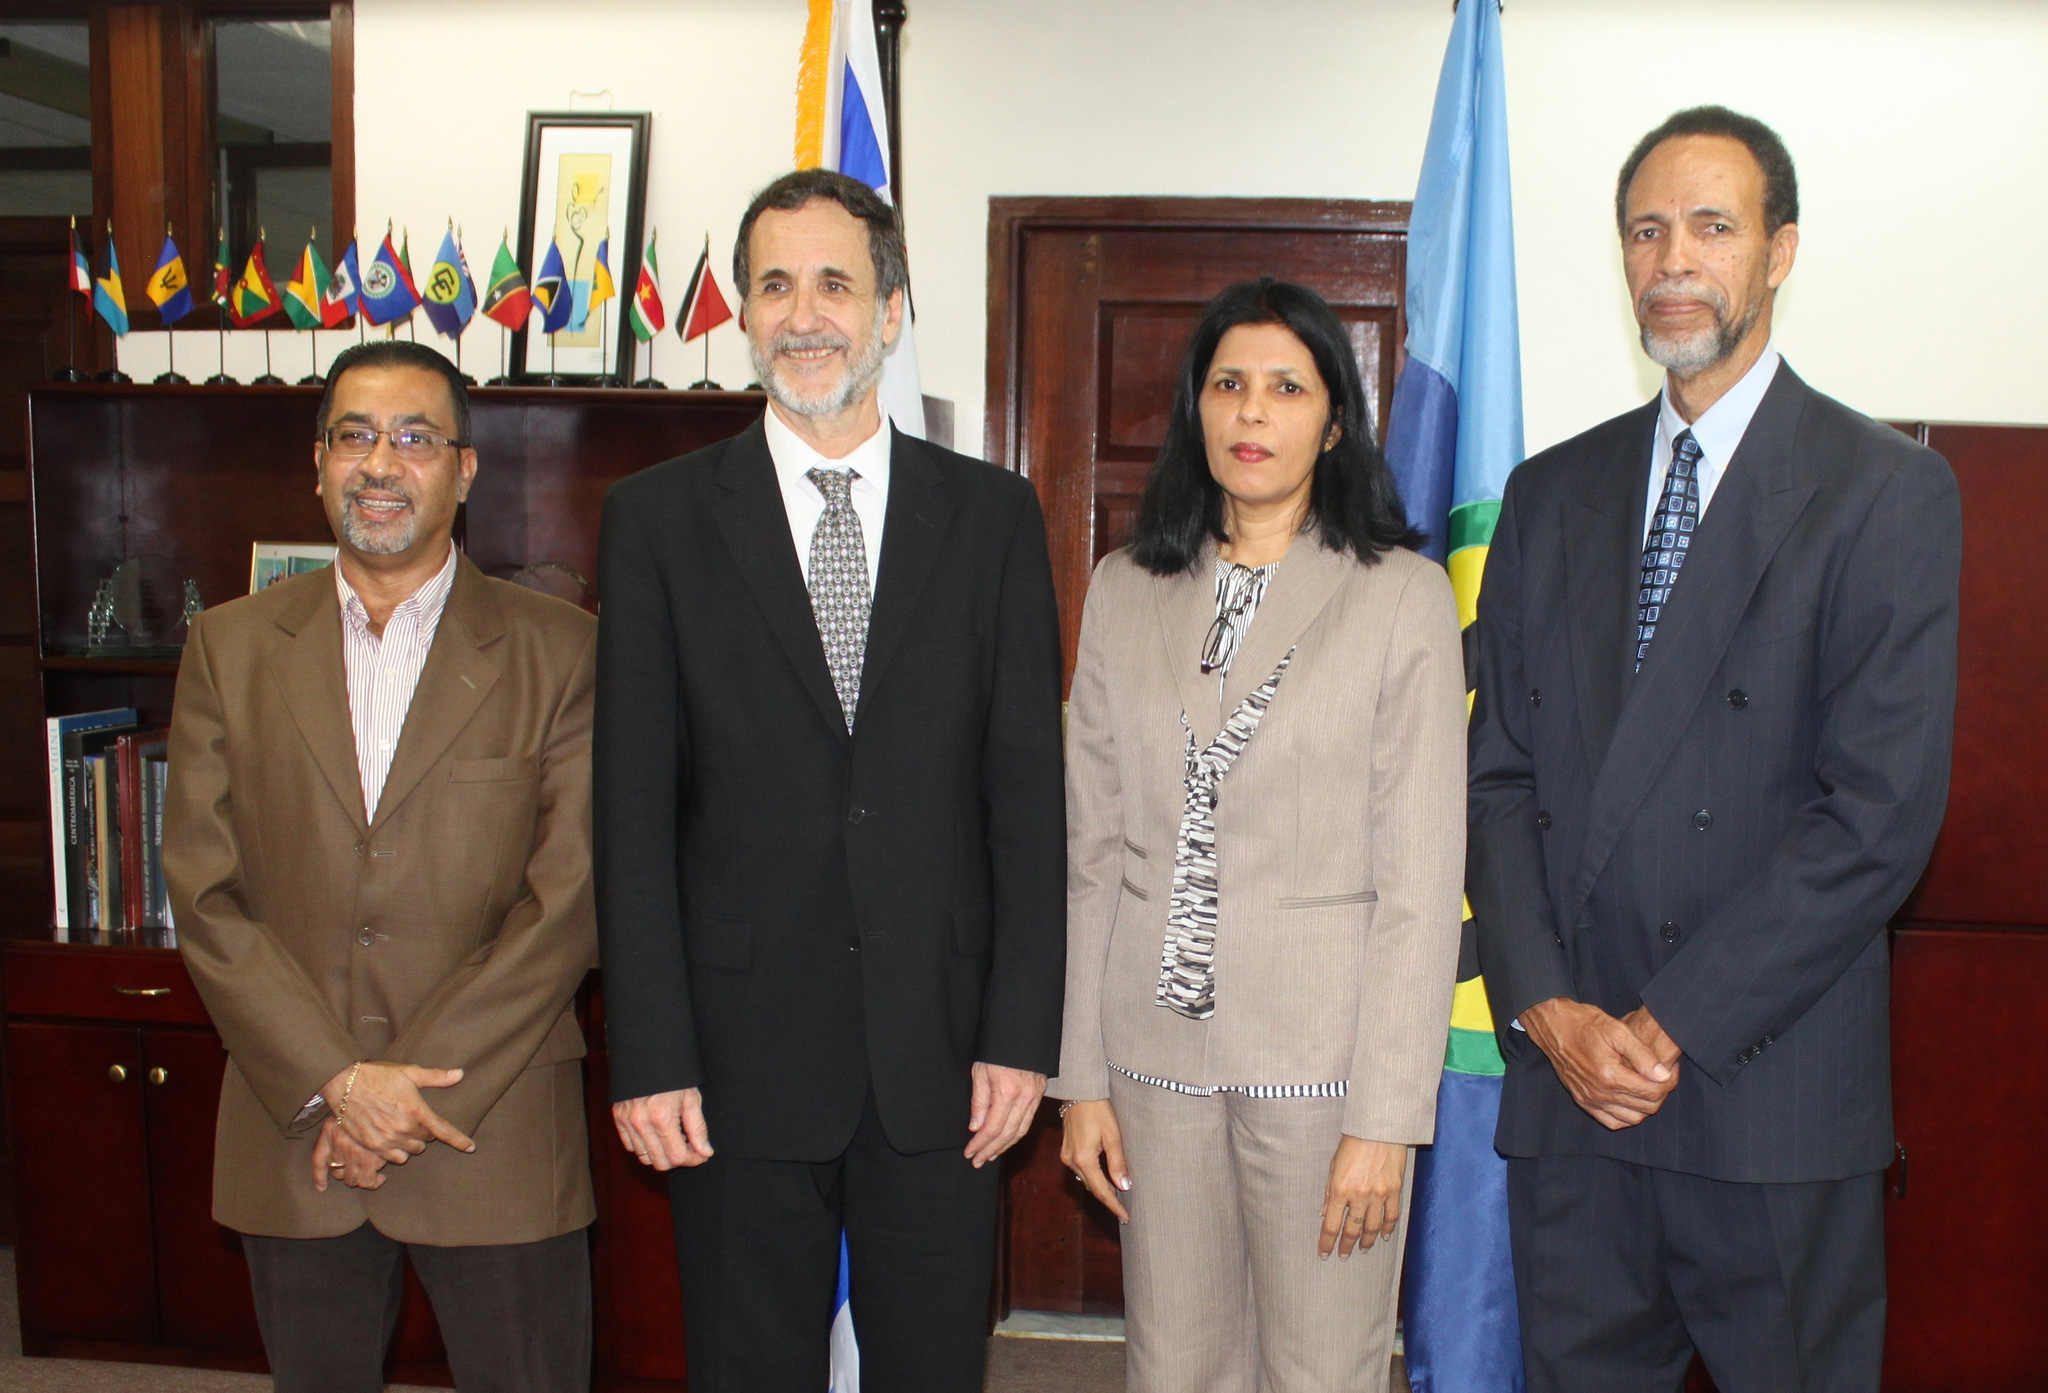 The Plenipotentiary Representative of the State of Israel to the Caribbean Community (CARICOM), His Excellency Mordehai Amihai-Bivas (second from left) presented his Credentials to the Deputy Secretary-General of CARICOM, Ambassador Manorma Soeknanda